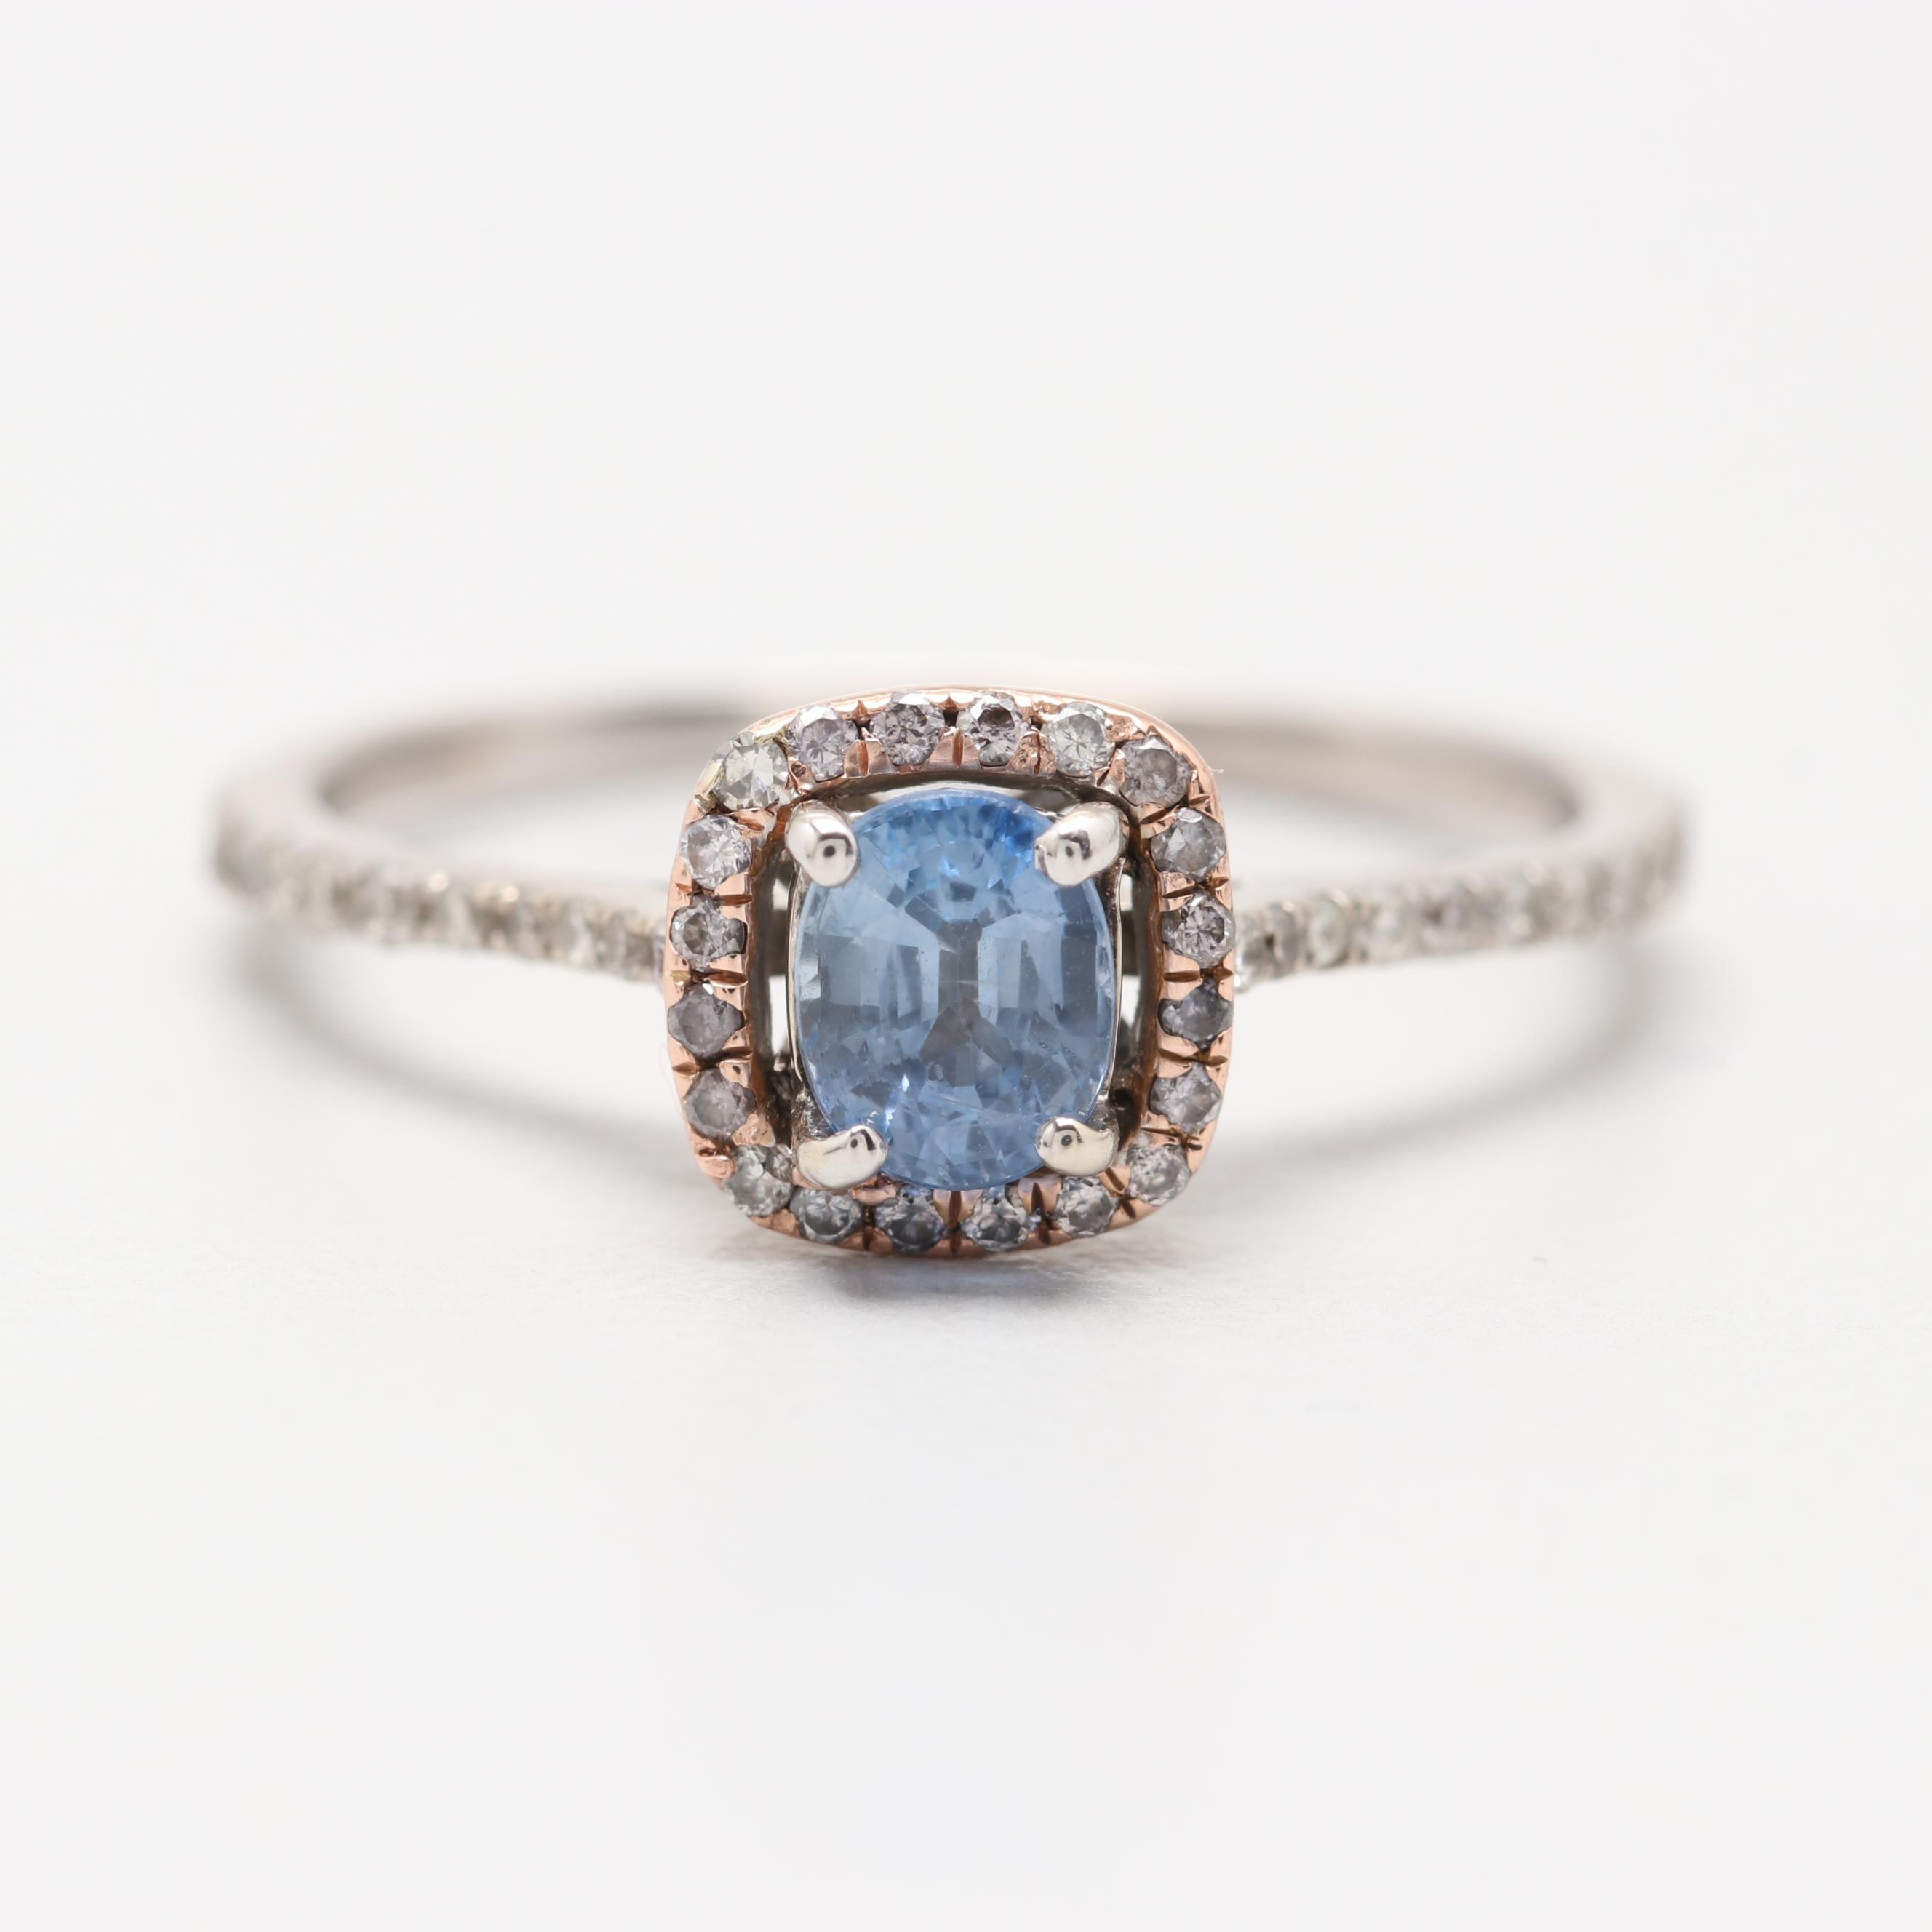 14K White Gold Sapphire and Diamnd Halo Ring with Rose Gold Accent